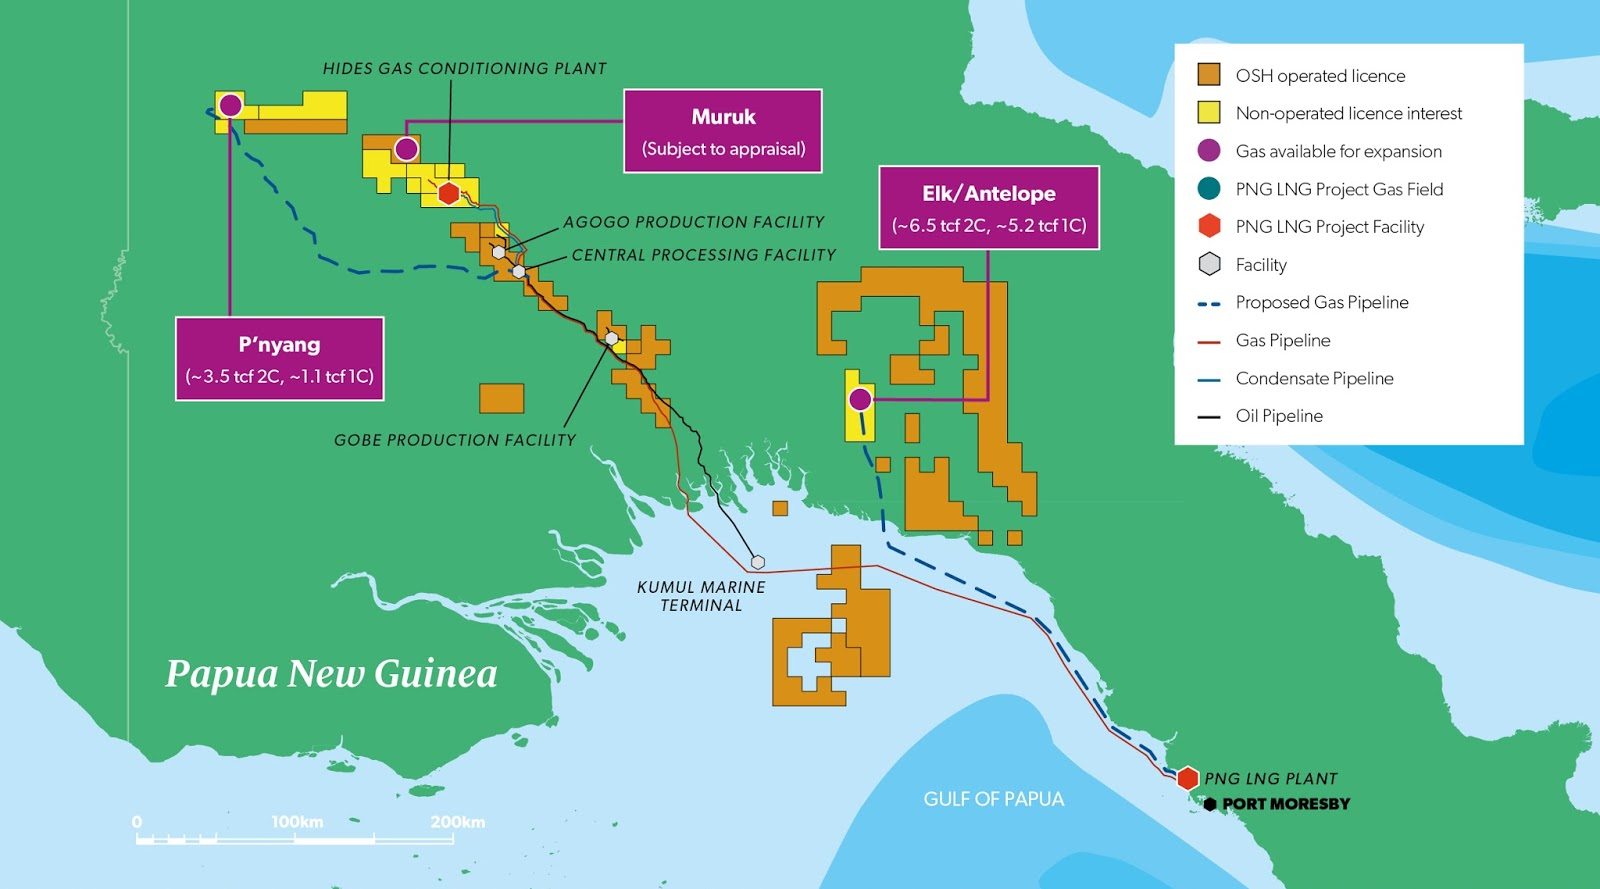 co mingled gas marketing the new lng could come onstream by the early 2020s and would arrive in time for an emerging lng supply gap that is foreseen by